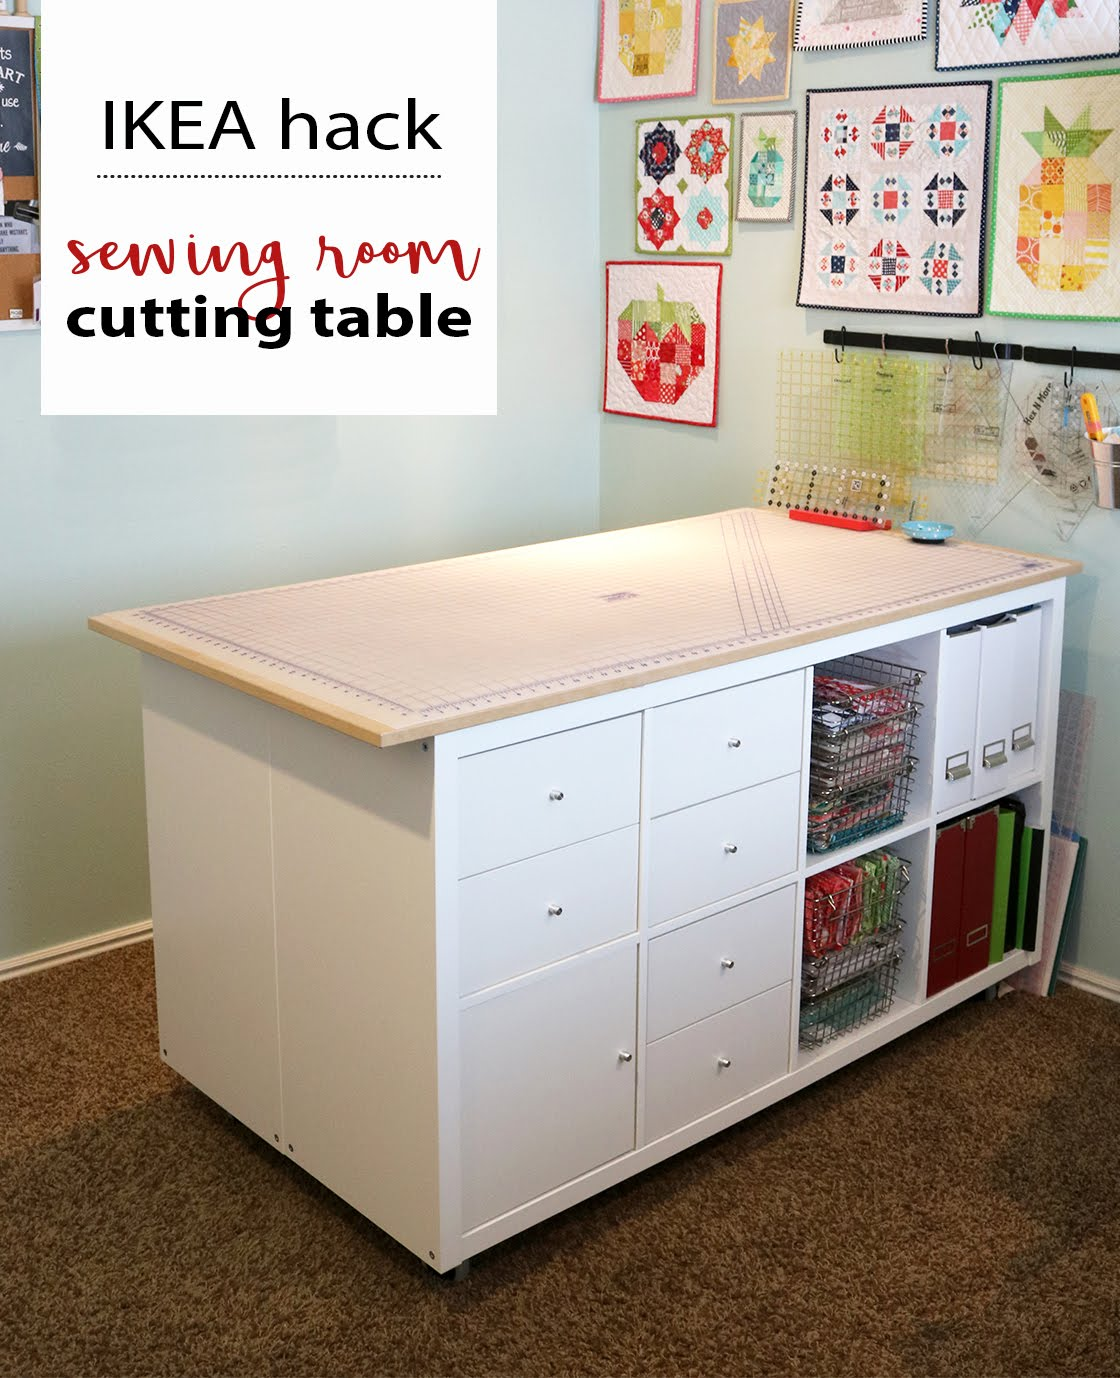 Ikea Table A Bright Corner Diy Sewing Room Cutting Table Ikea Hack